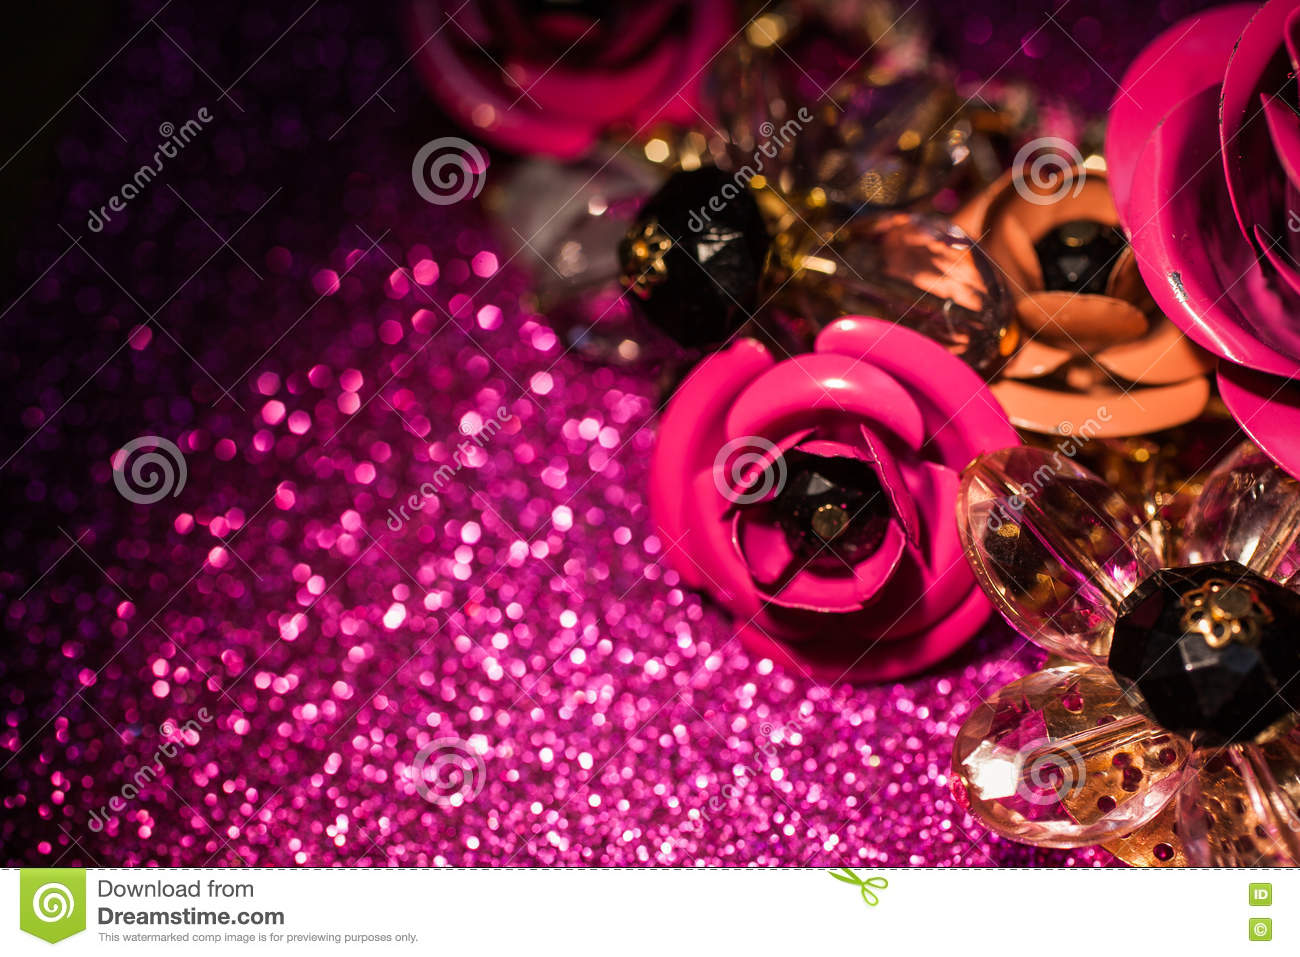 Jewelry Background With Luxury Flowers On Pink Glitter Stock Image